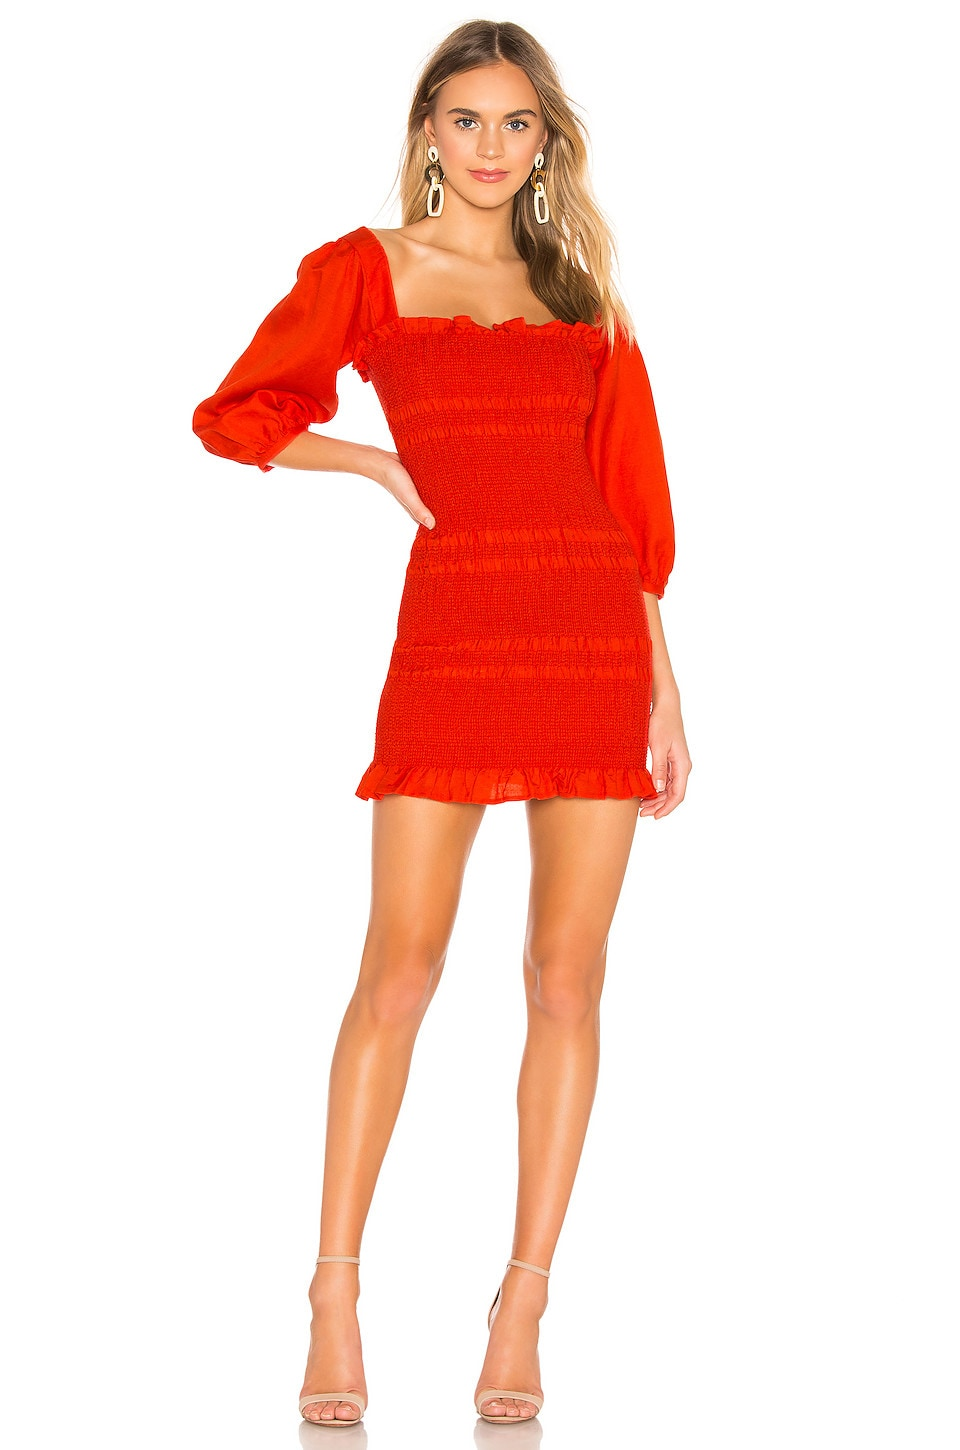 Capulet Siobhan Dress in Tangerine